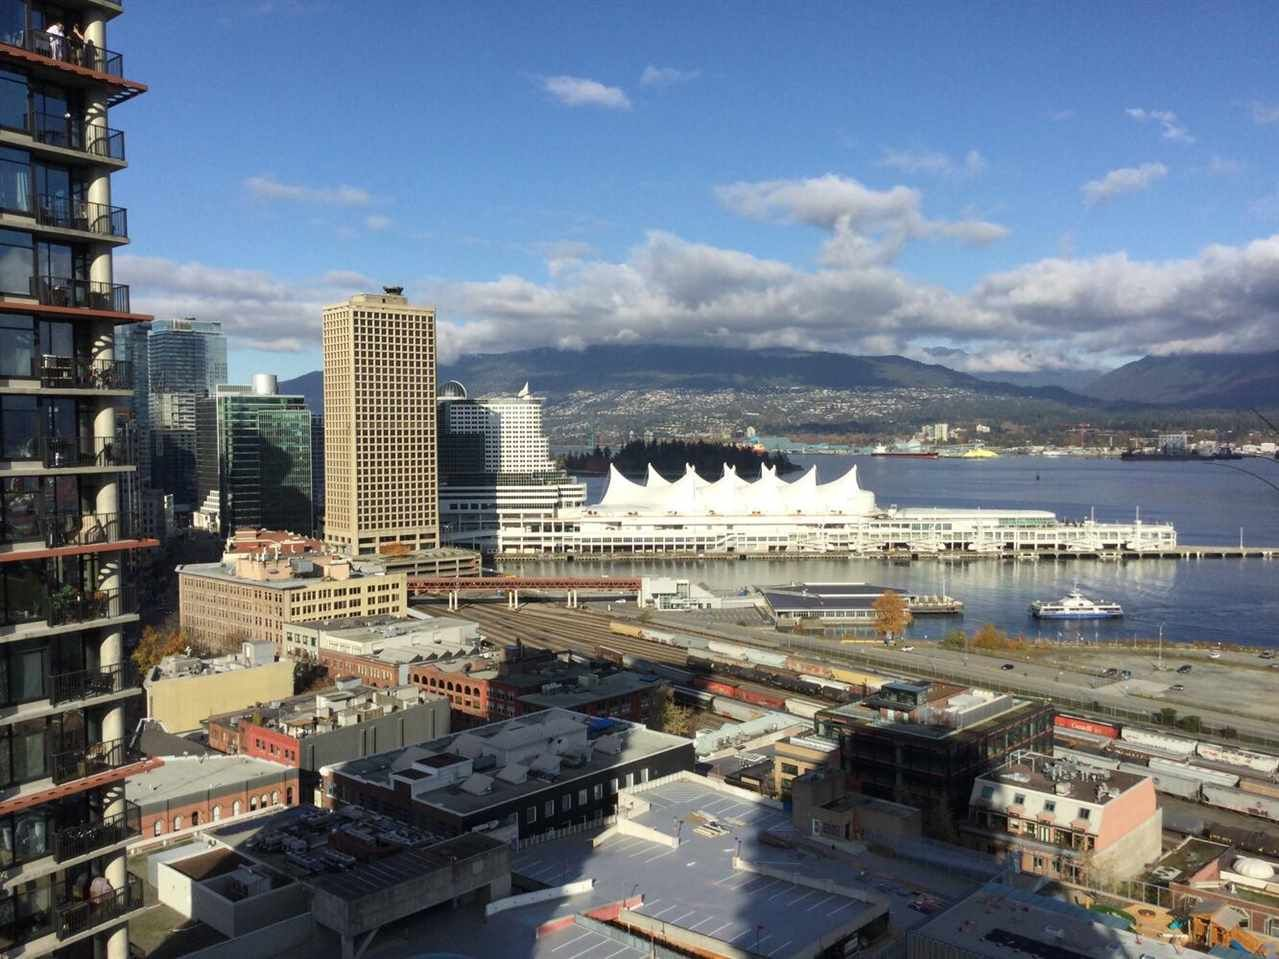 """Main Photo: 2407 108 W CORDOVA Street in Vancouver: Downtown VW Condo for sale in """"WOODWARDS W 32"""" (Vancouver West)  : MLS®# R2517265"""